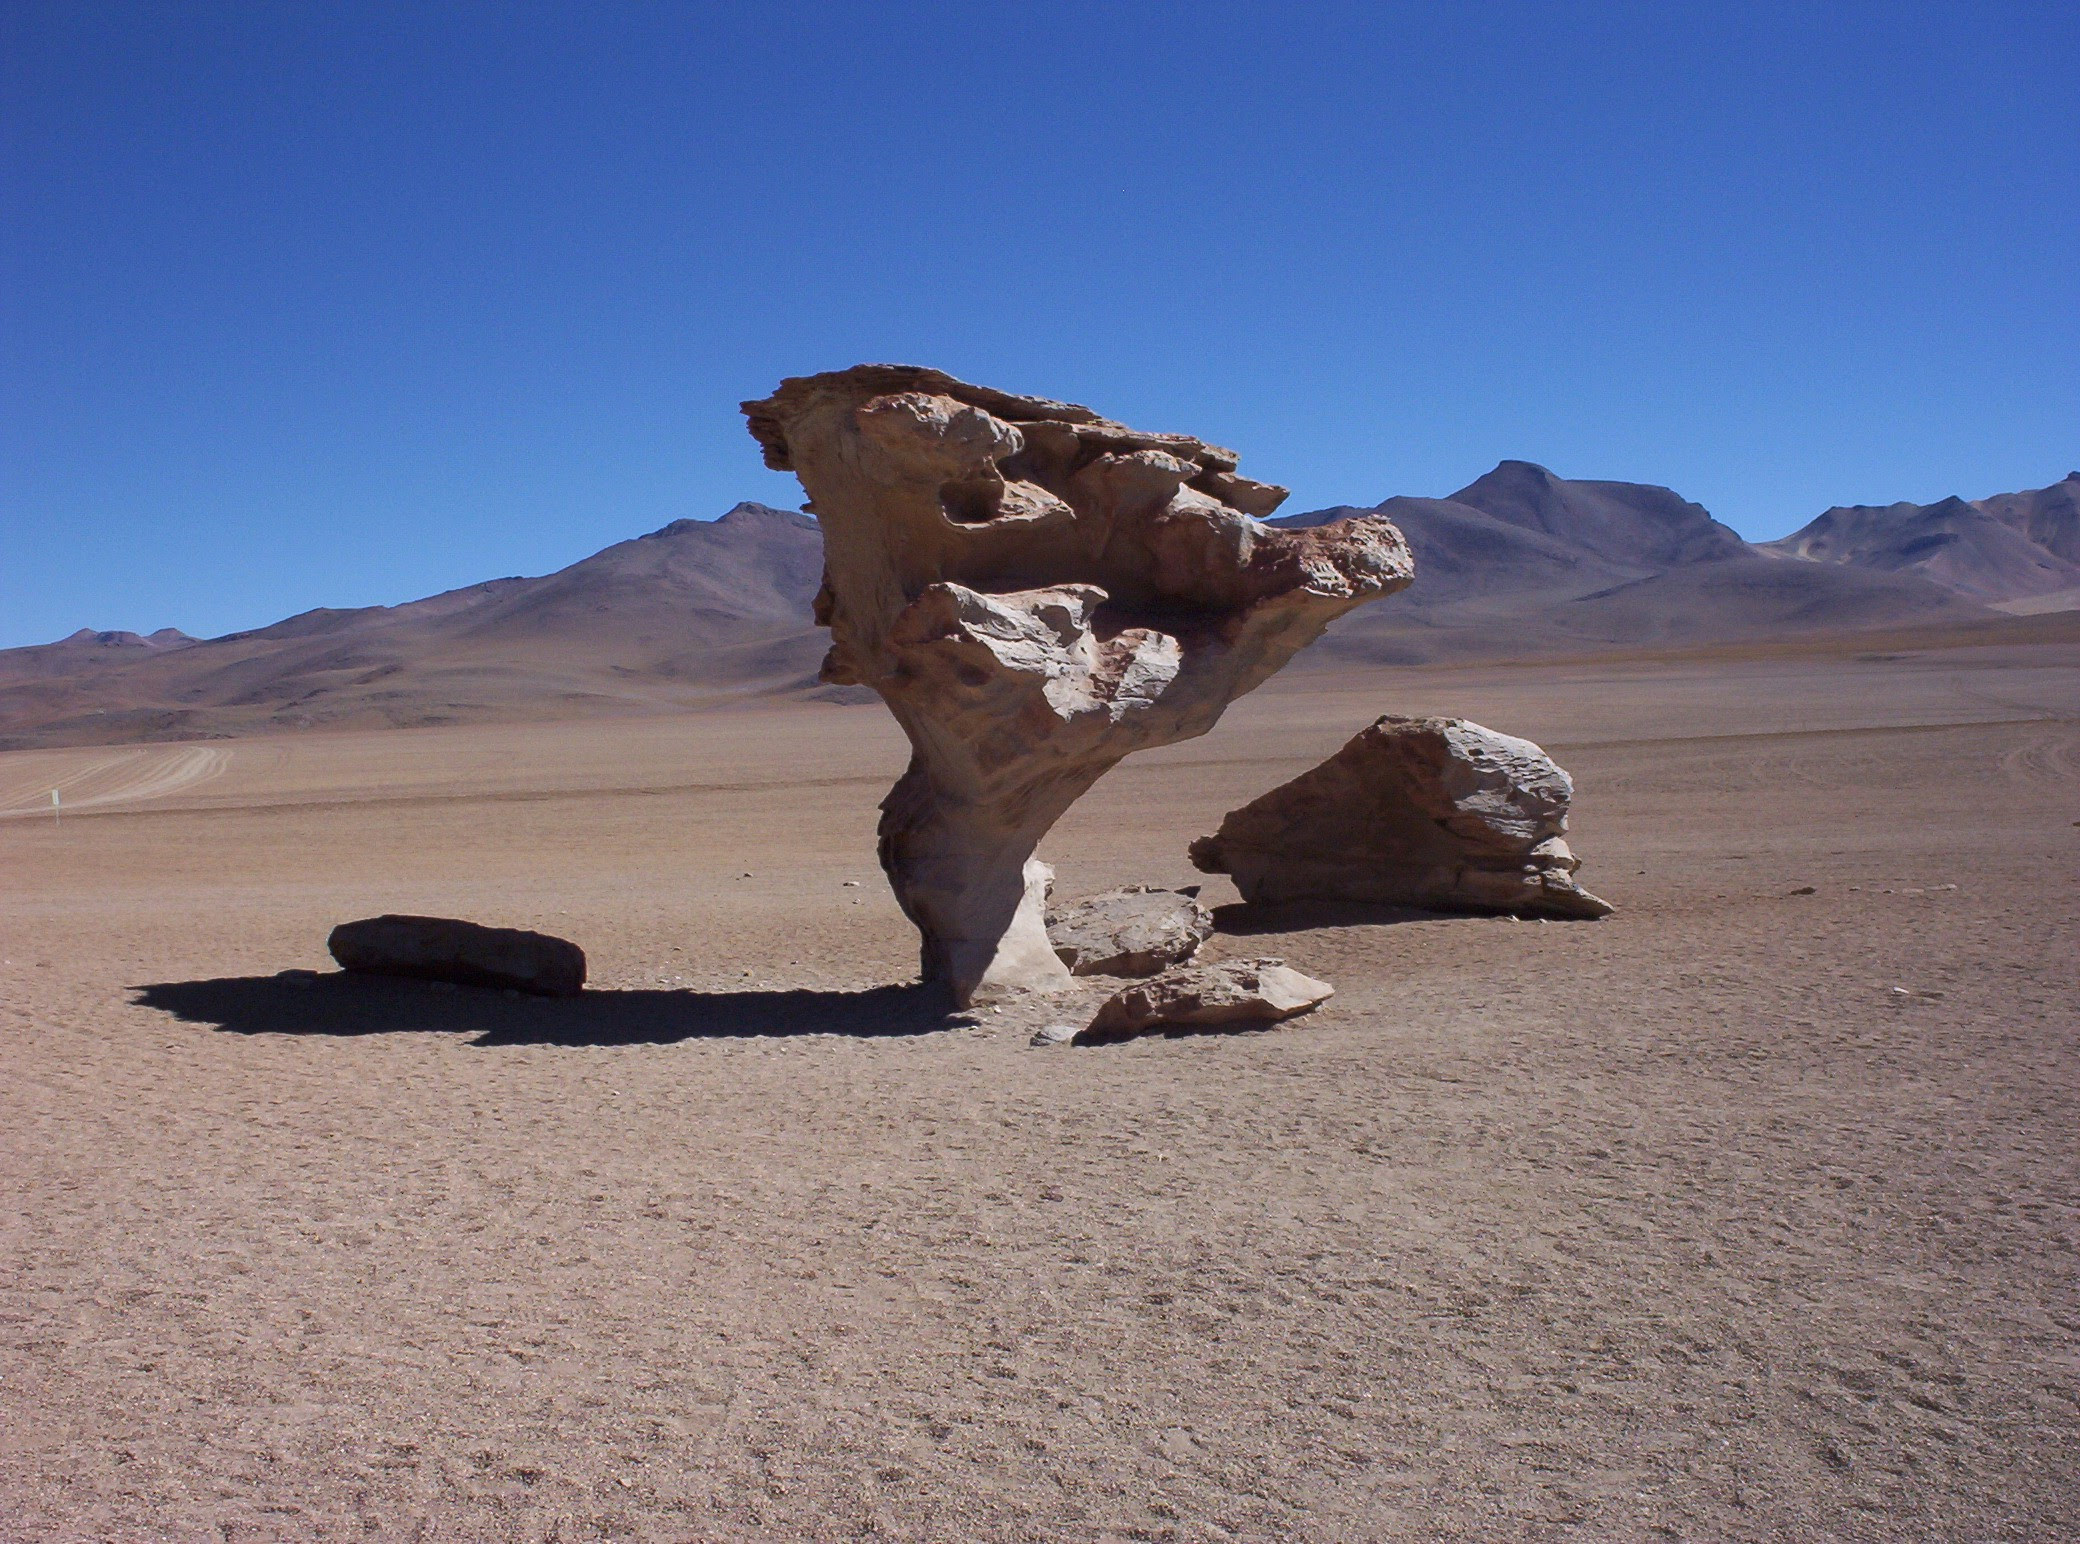 http://upload.wikimedia.org/wikipedia/commons/0/09/Im_Salar_de_Uyuni.jpg